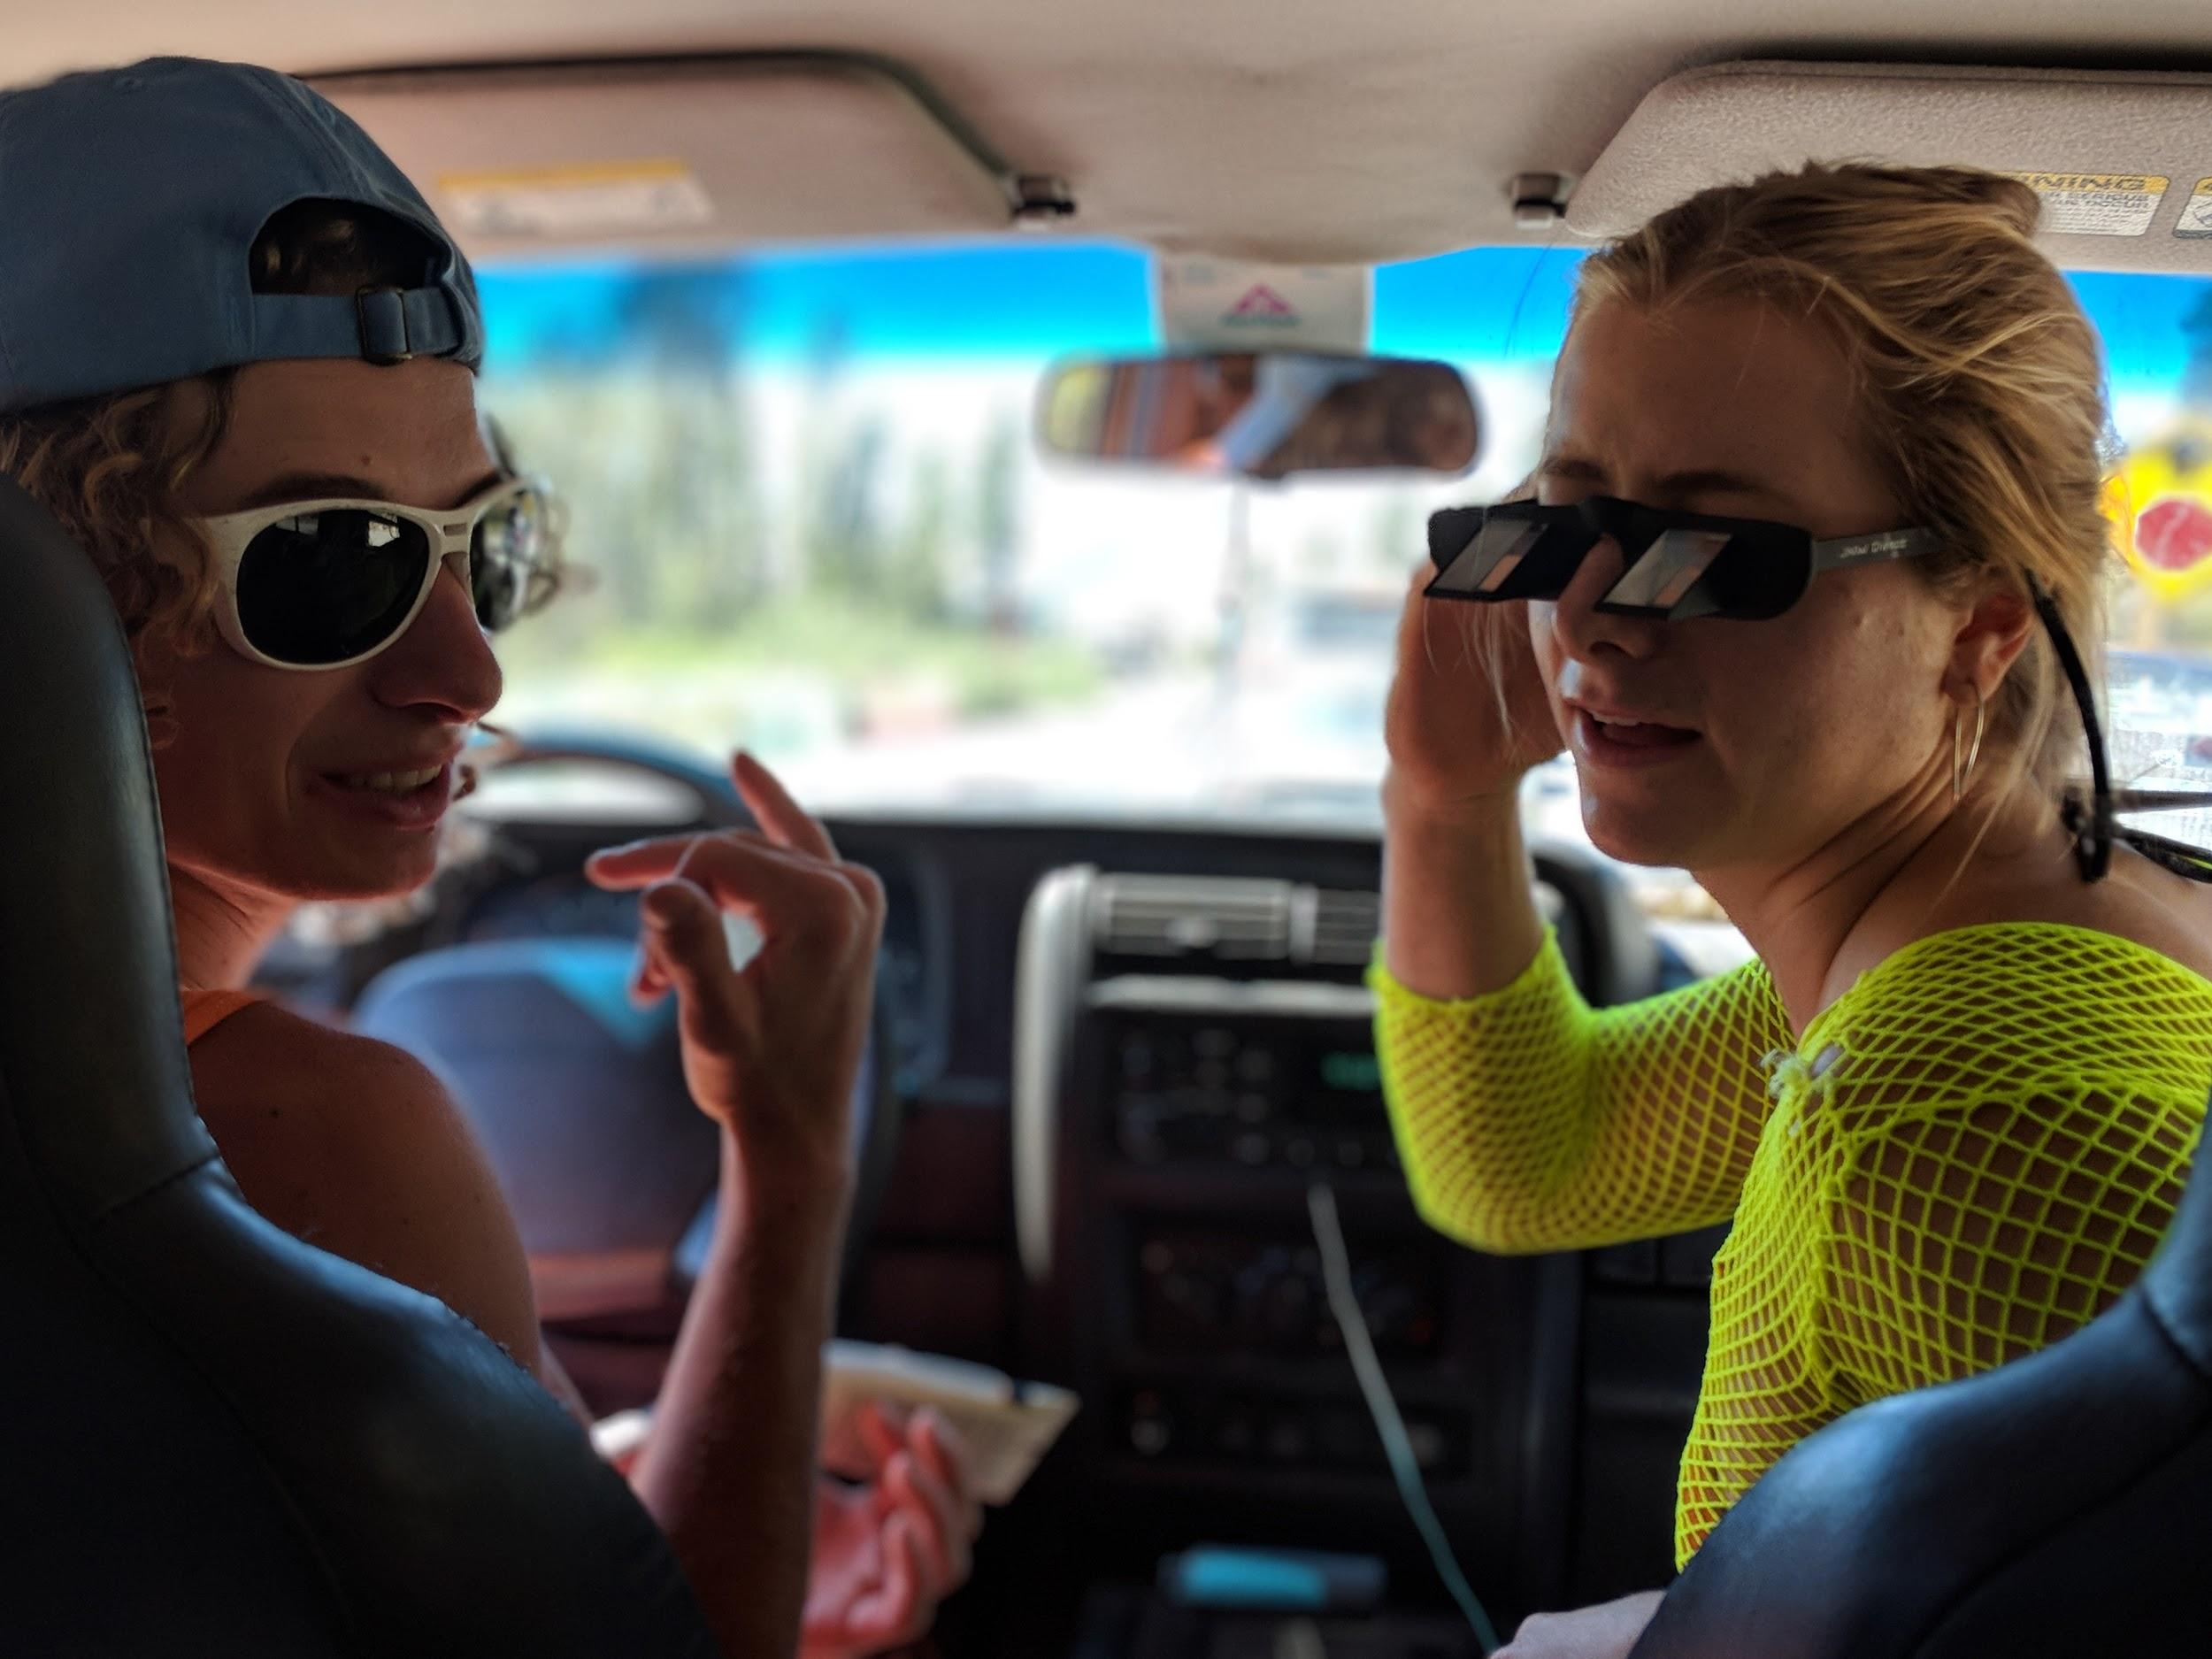 Climbers Wearing Glacier Glasses And Belay Glasses In A Car